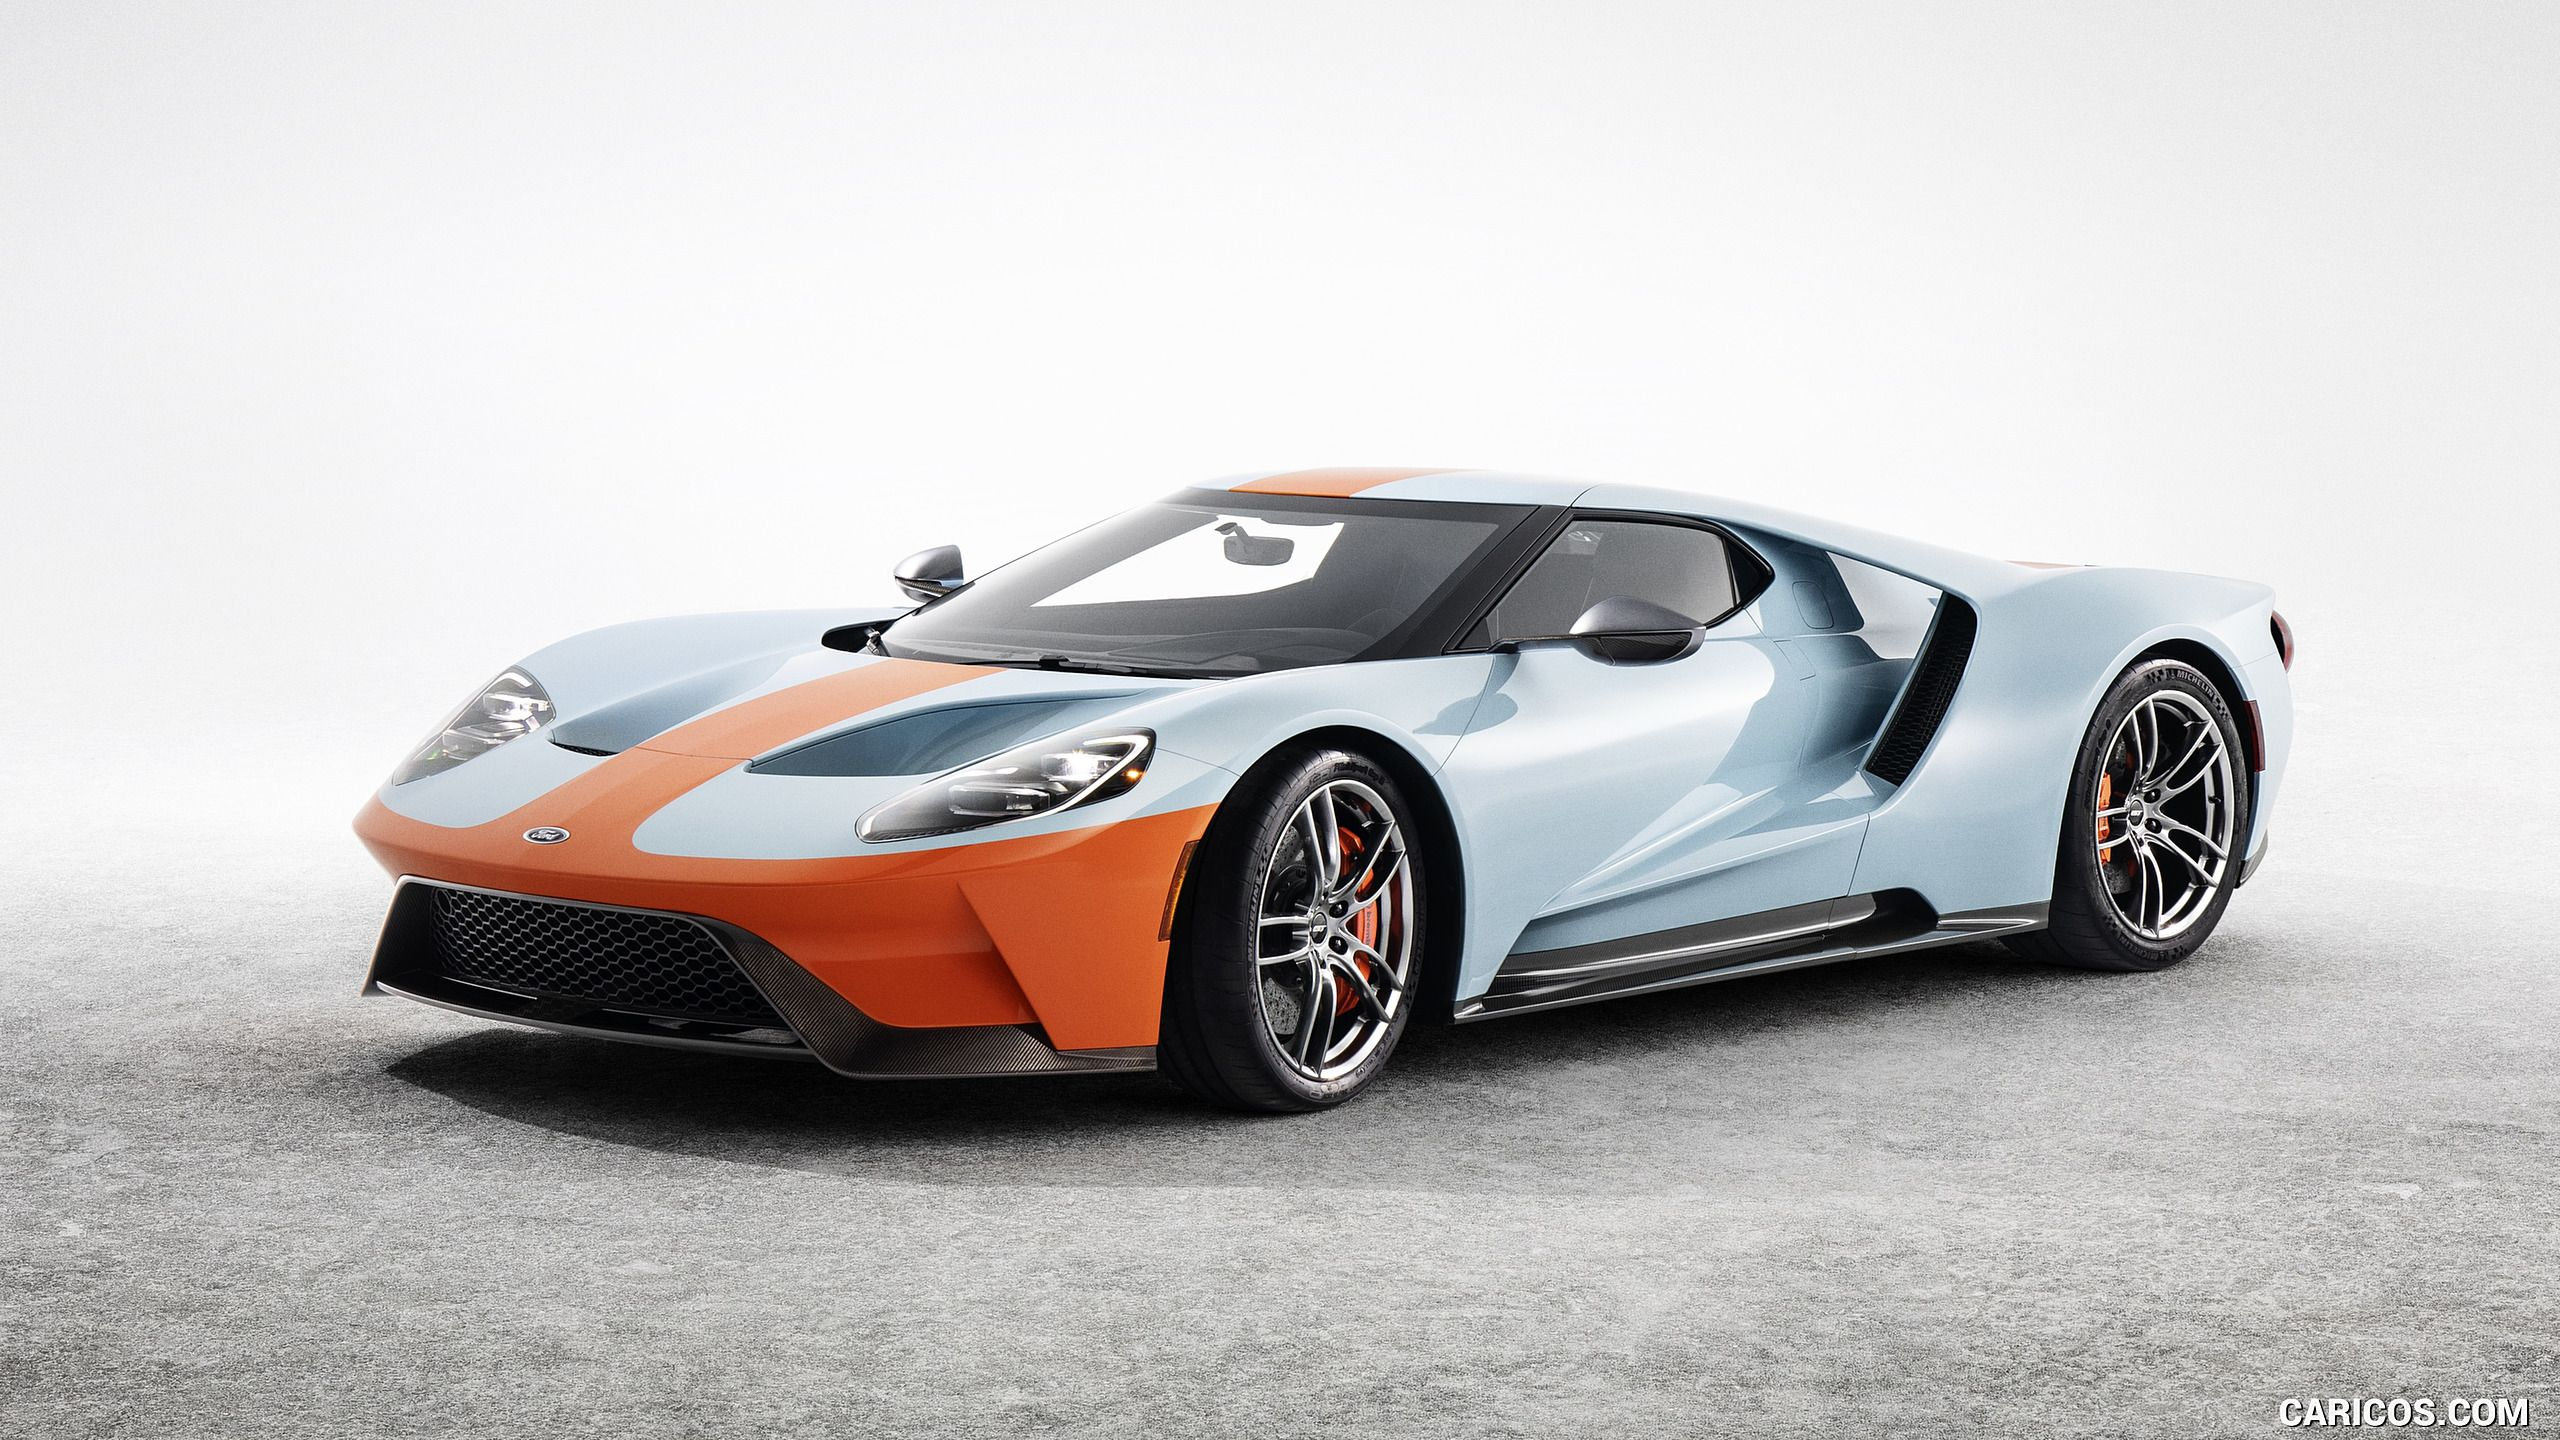 2019 Ford Gt Heritage Edition With Images Ford Gt Gulf Ford Gt Ford Gt40